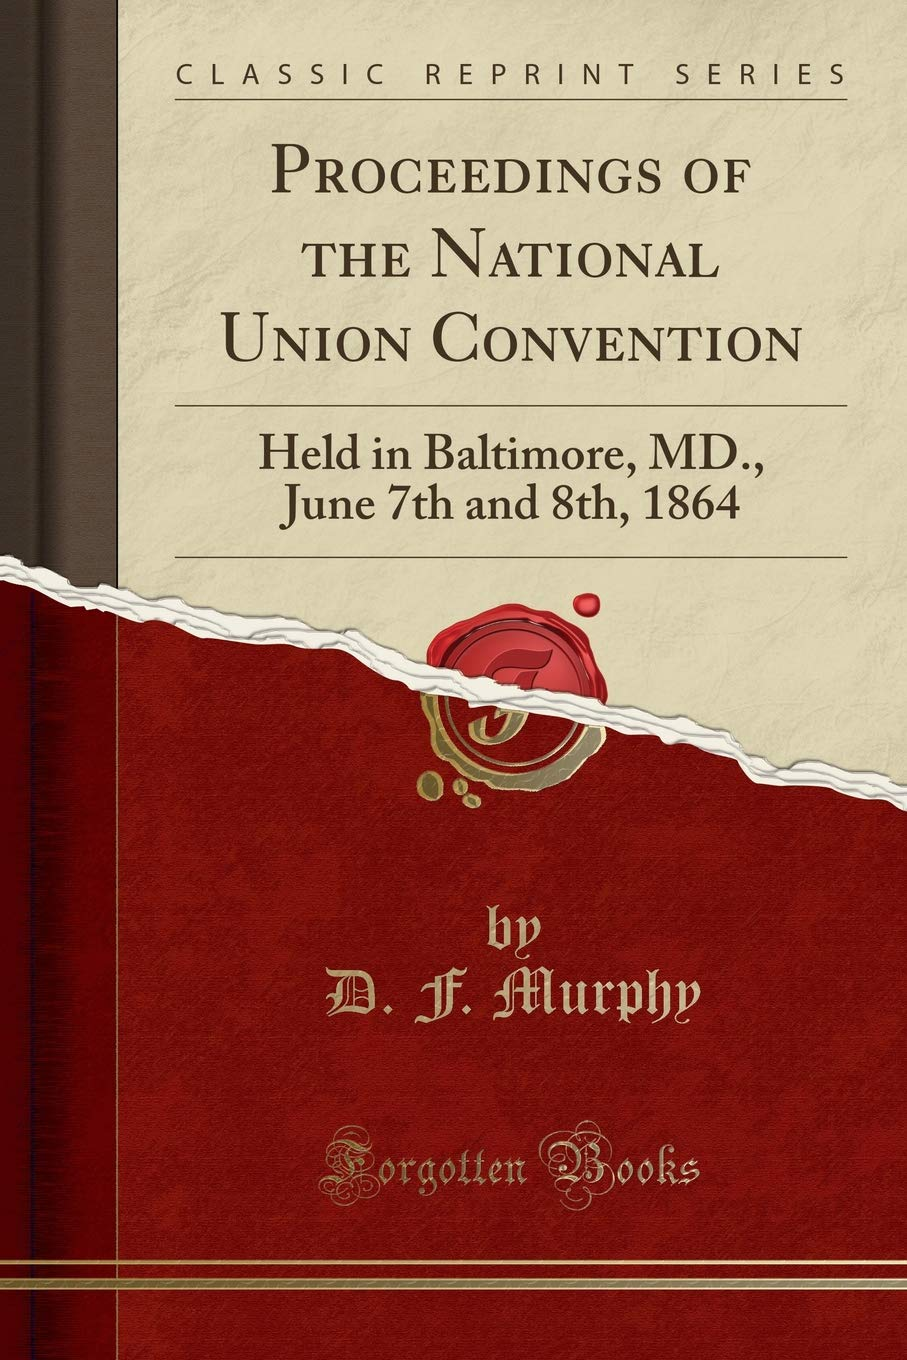 Proceedings of the National Union Convention: Held in Baltimore, MD., June 7th and 8th, 1864 (Classic Reprint)